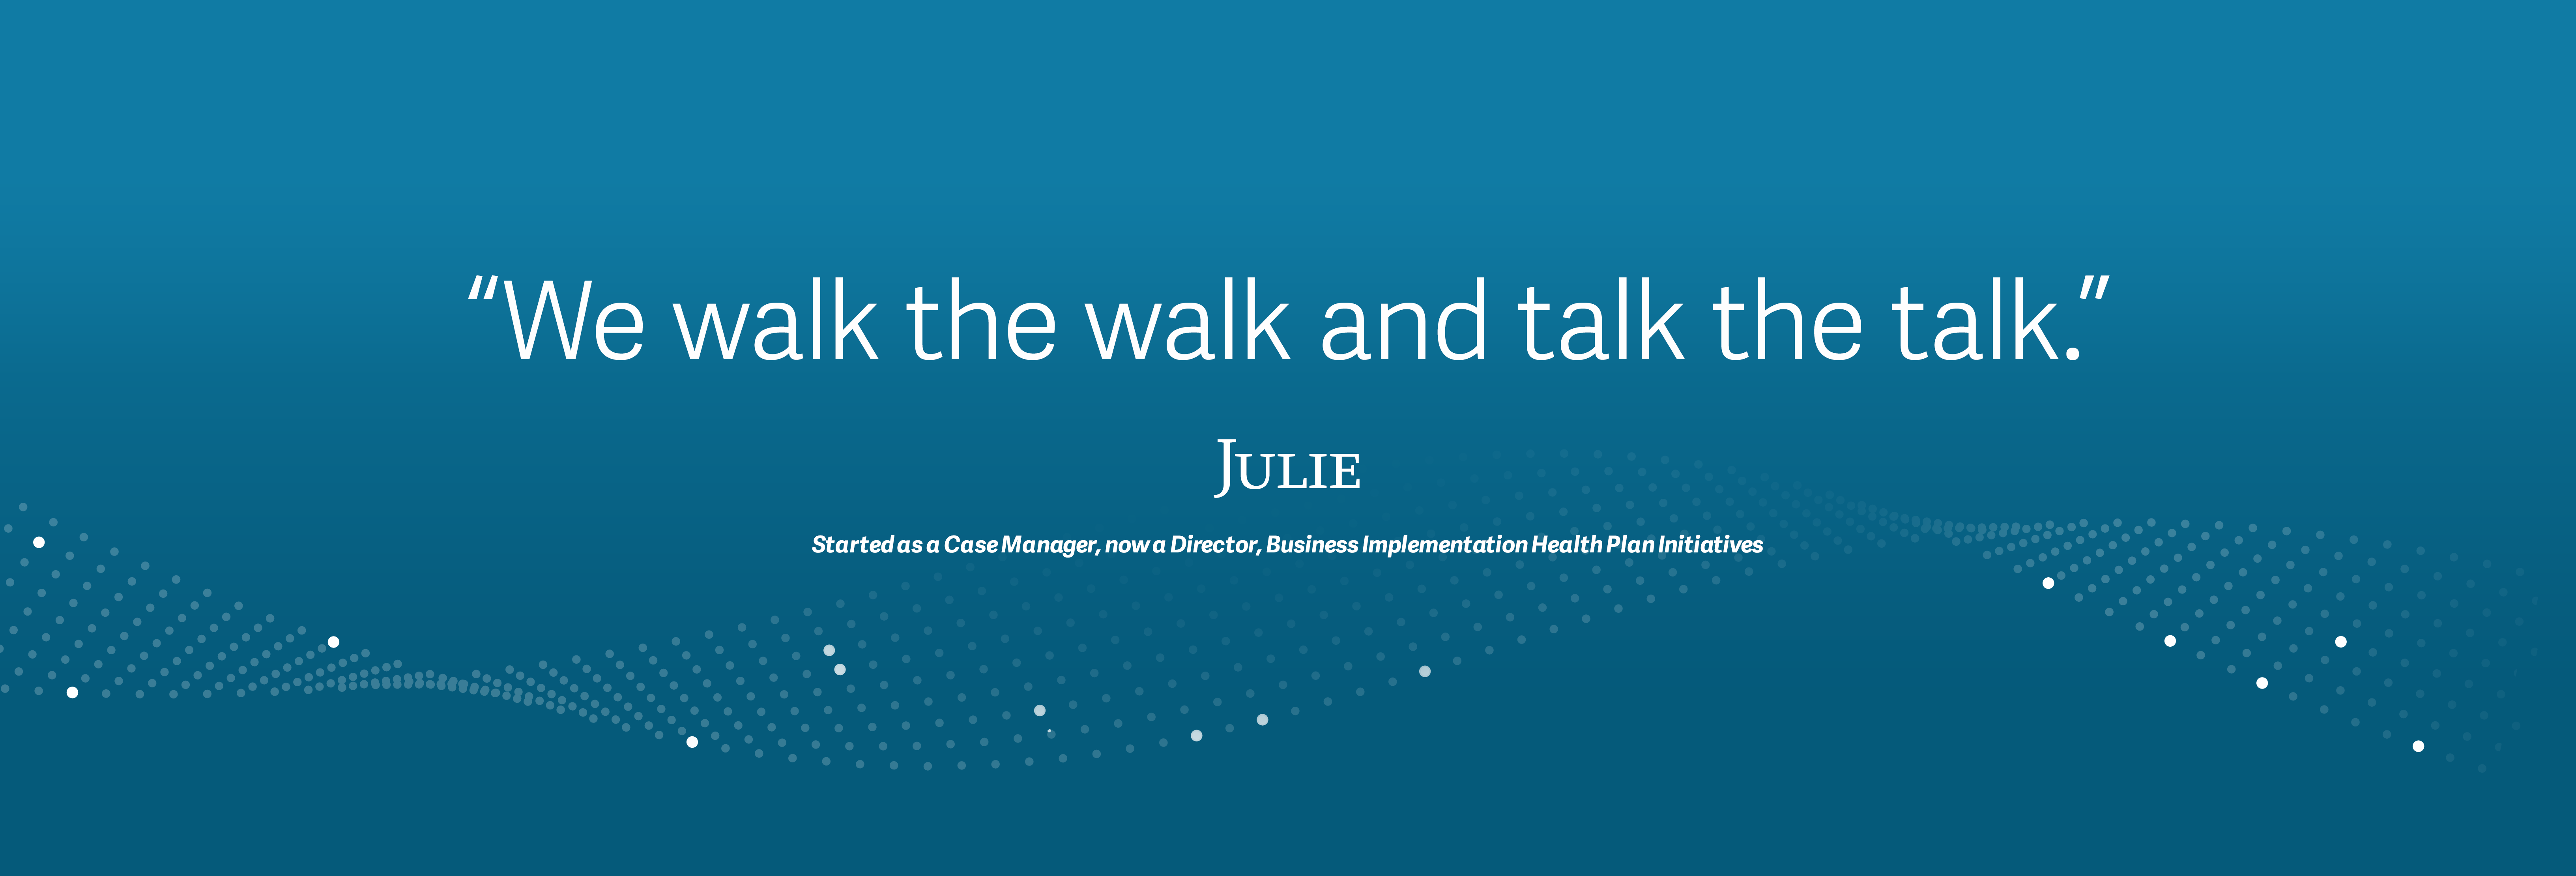 """we walk the walk and talk the talk"", Julie"